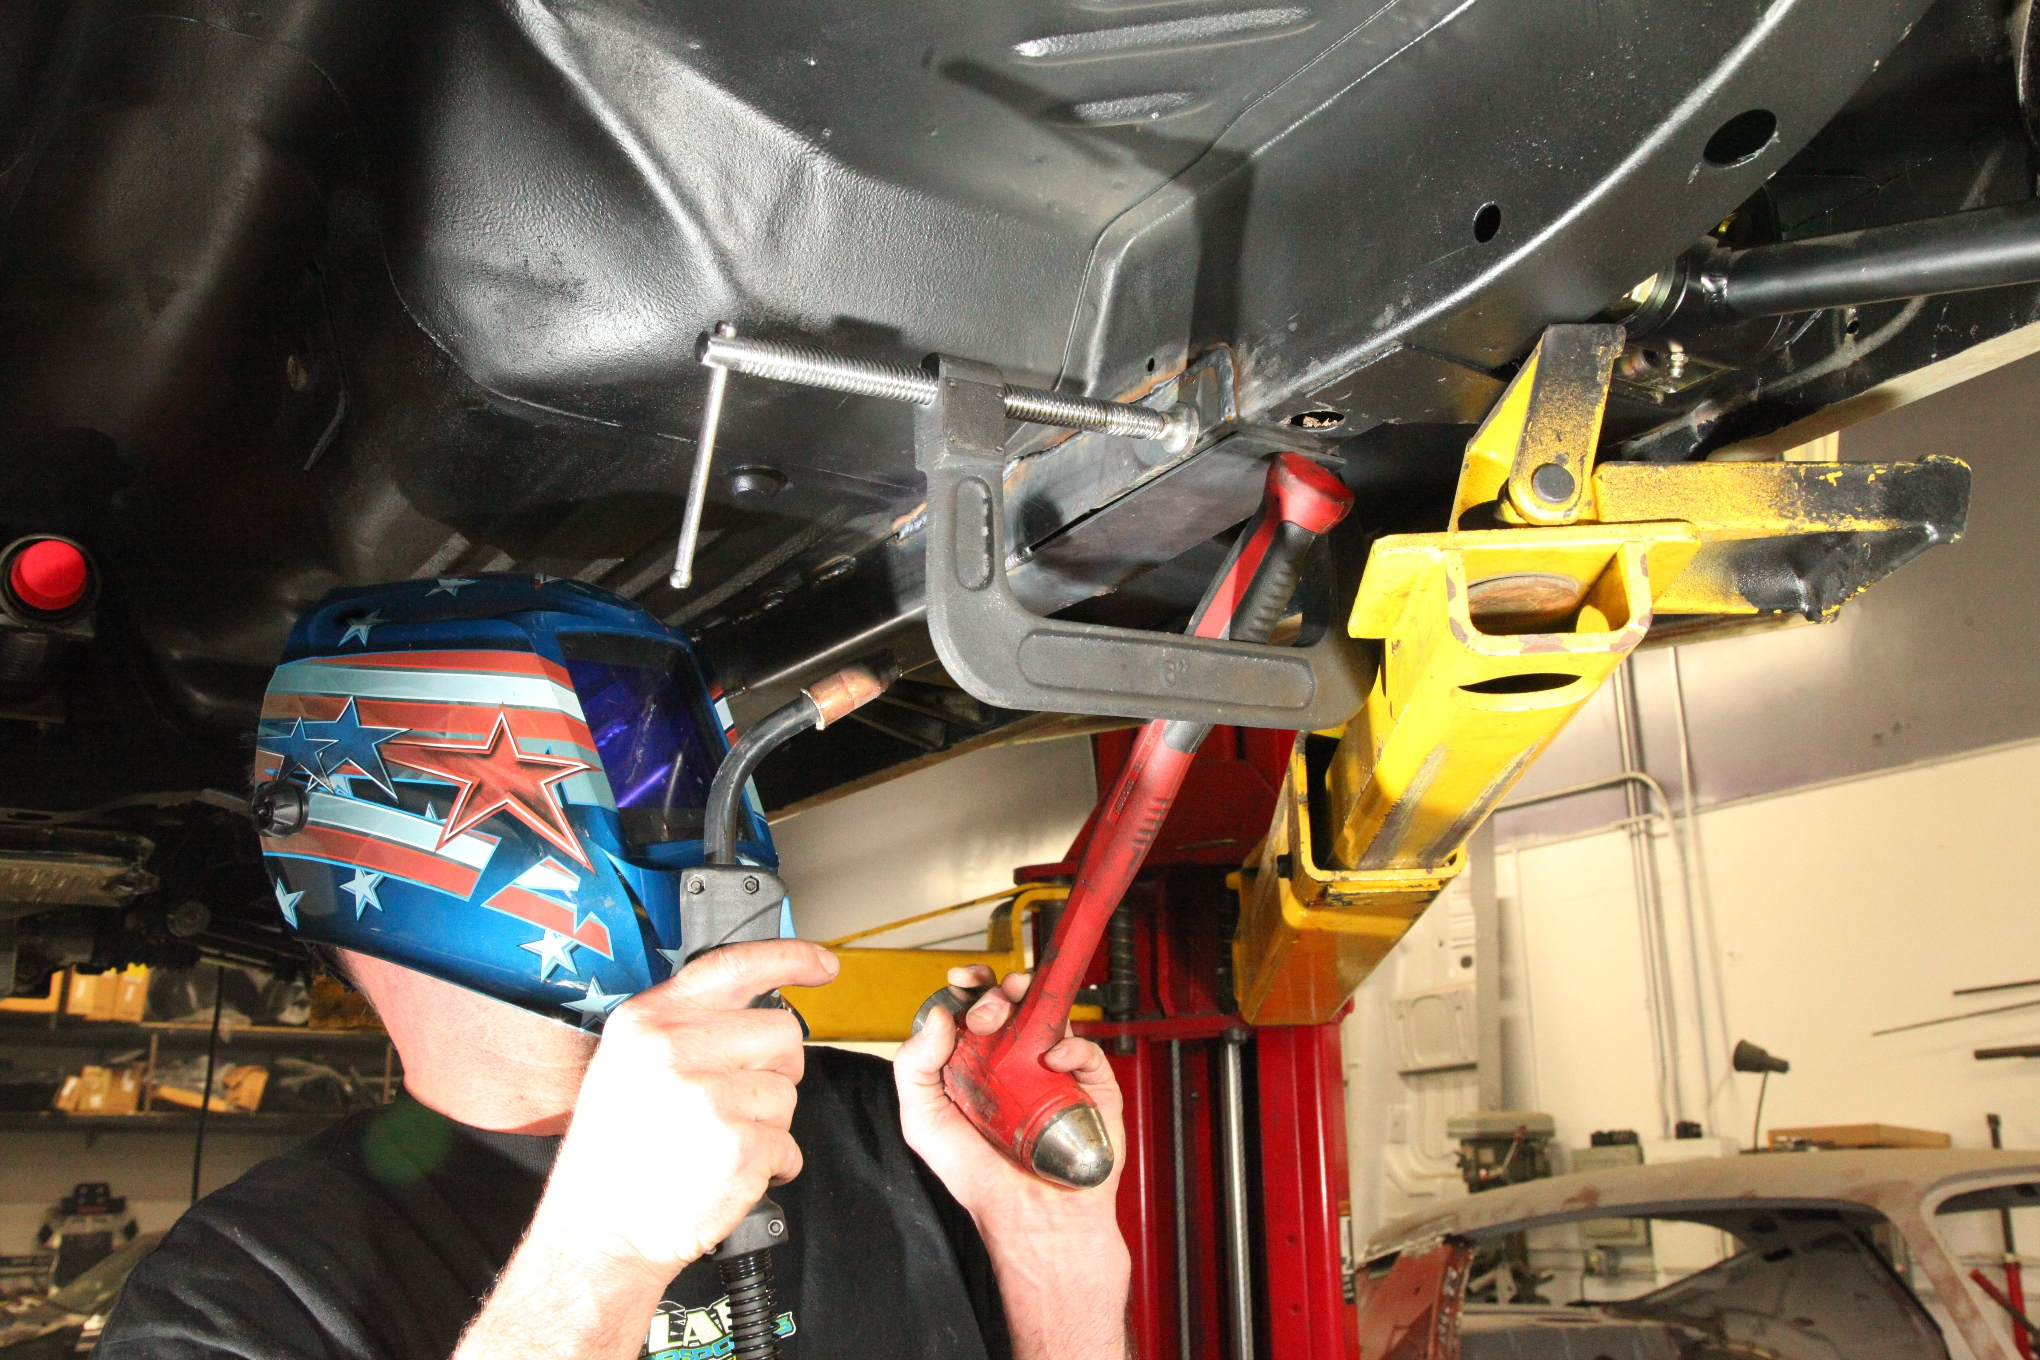 Before welding the rear framerails, the sides of the subframe connector need to be drawn against the factory rails using a large c-clamp. The handle of the hammer is being used here to pinch the top piece to the rail as it's being tack welded.